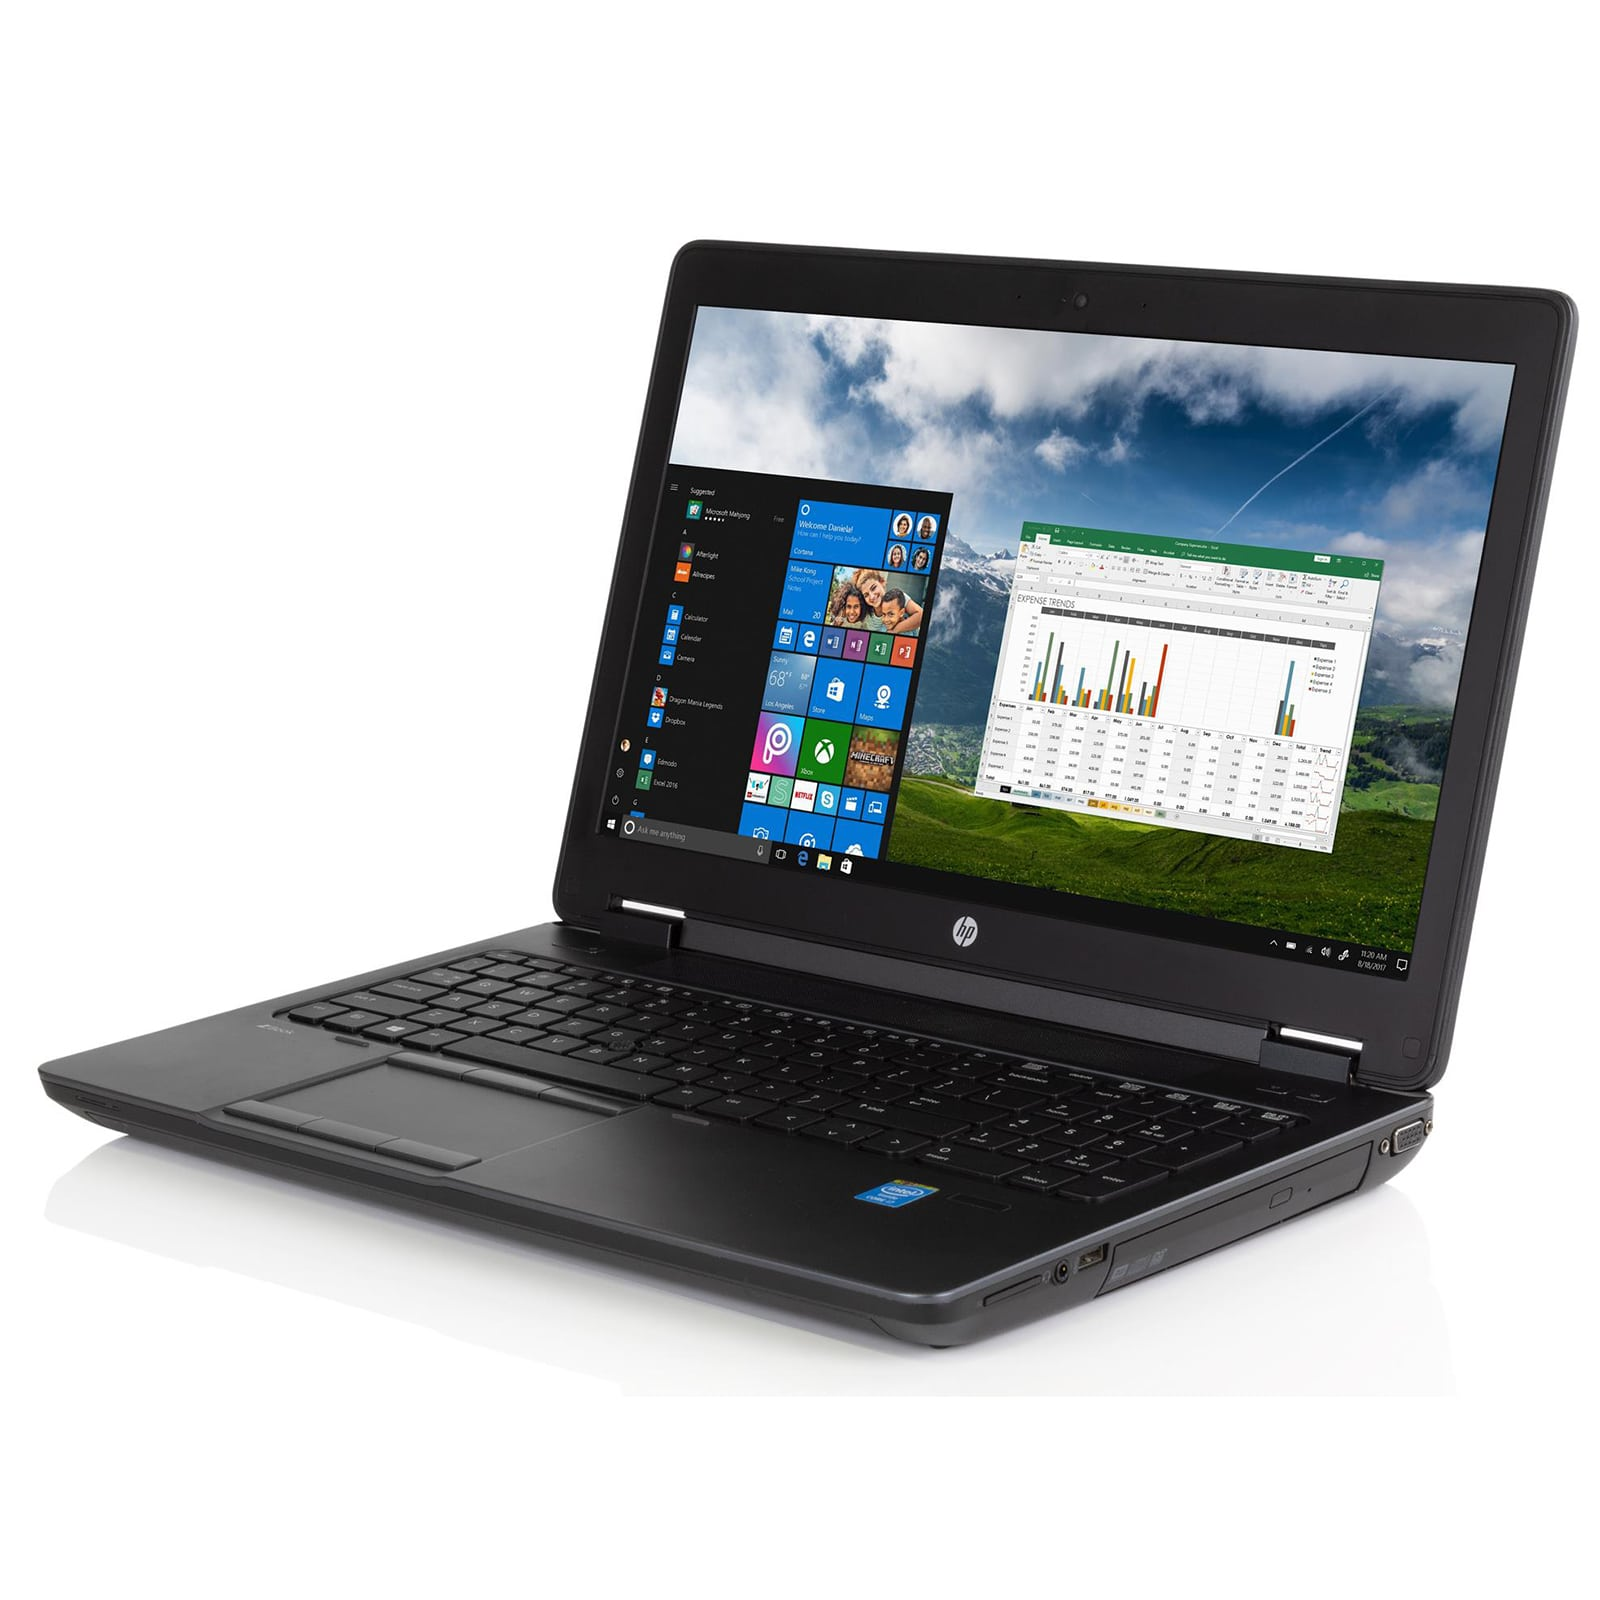 HP Zbook 15 G2 Core i7-4800QM, Ram 8GB, SSD 256GB, 15.6 inch Full HD, Quadro 2GB